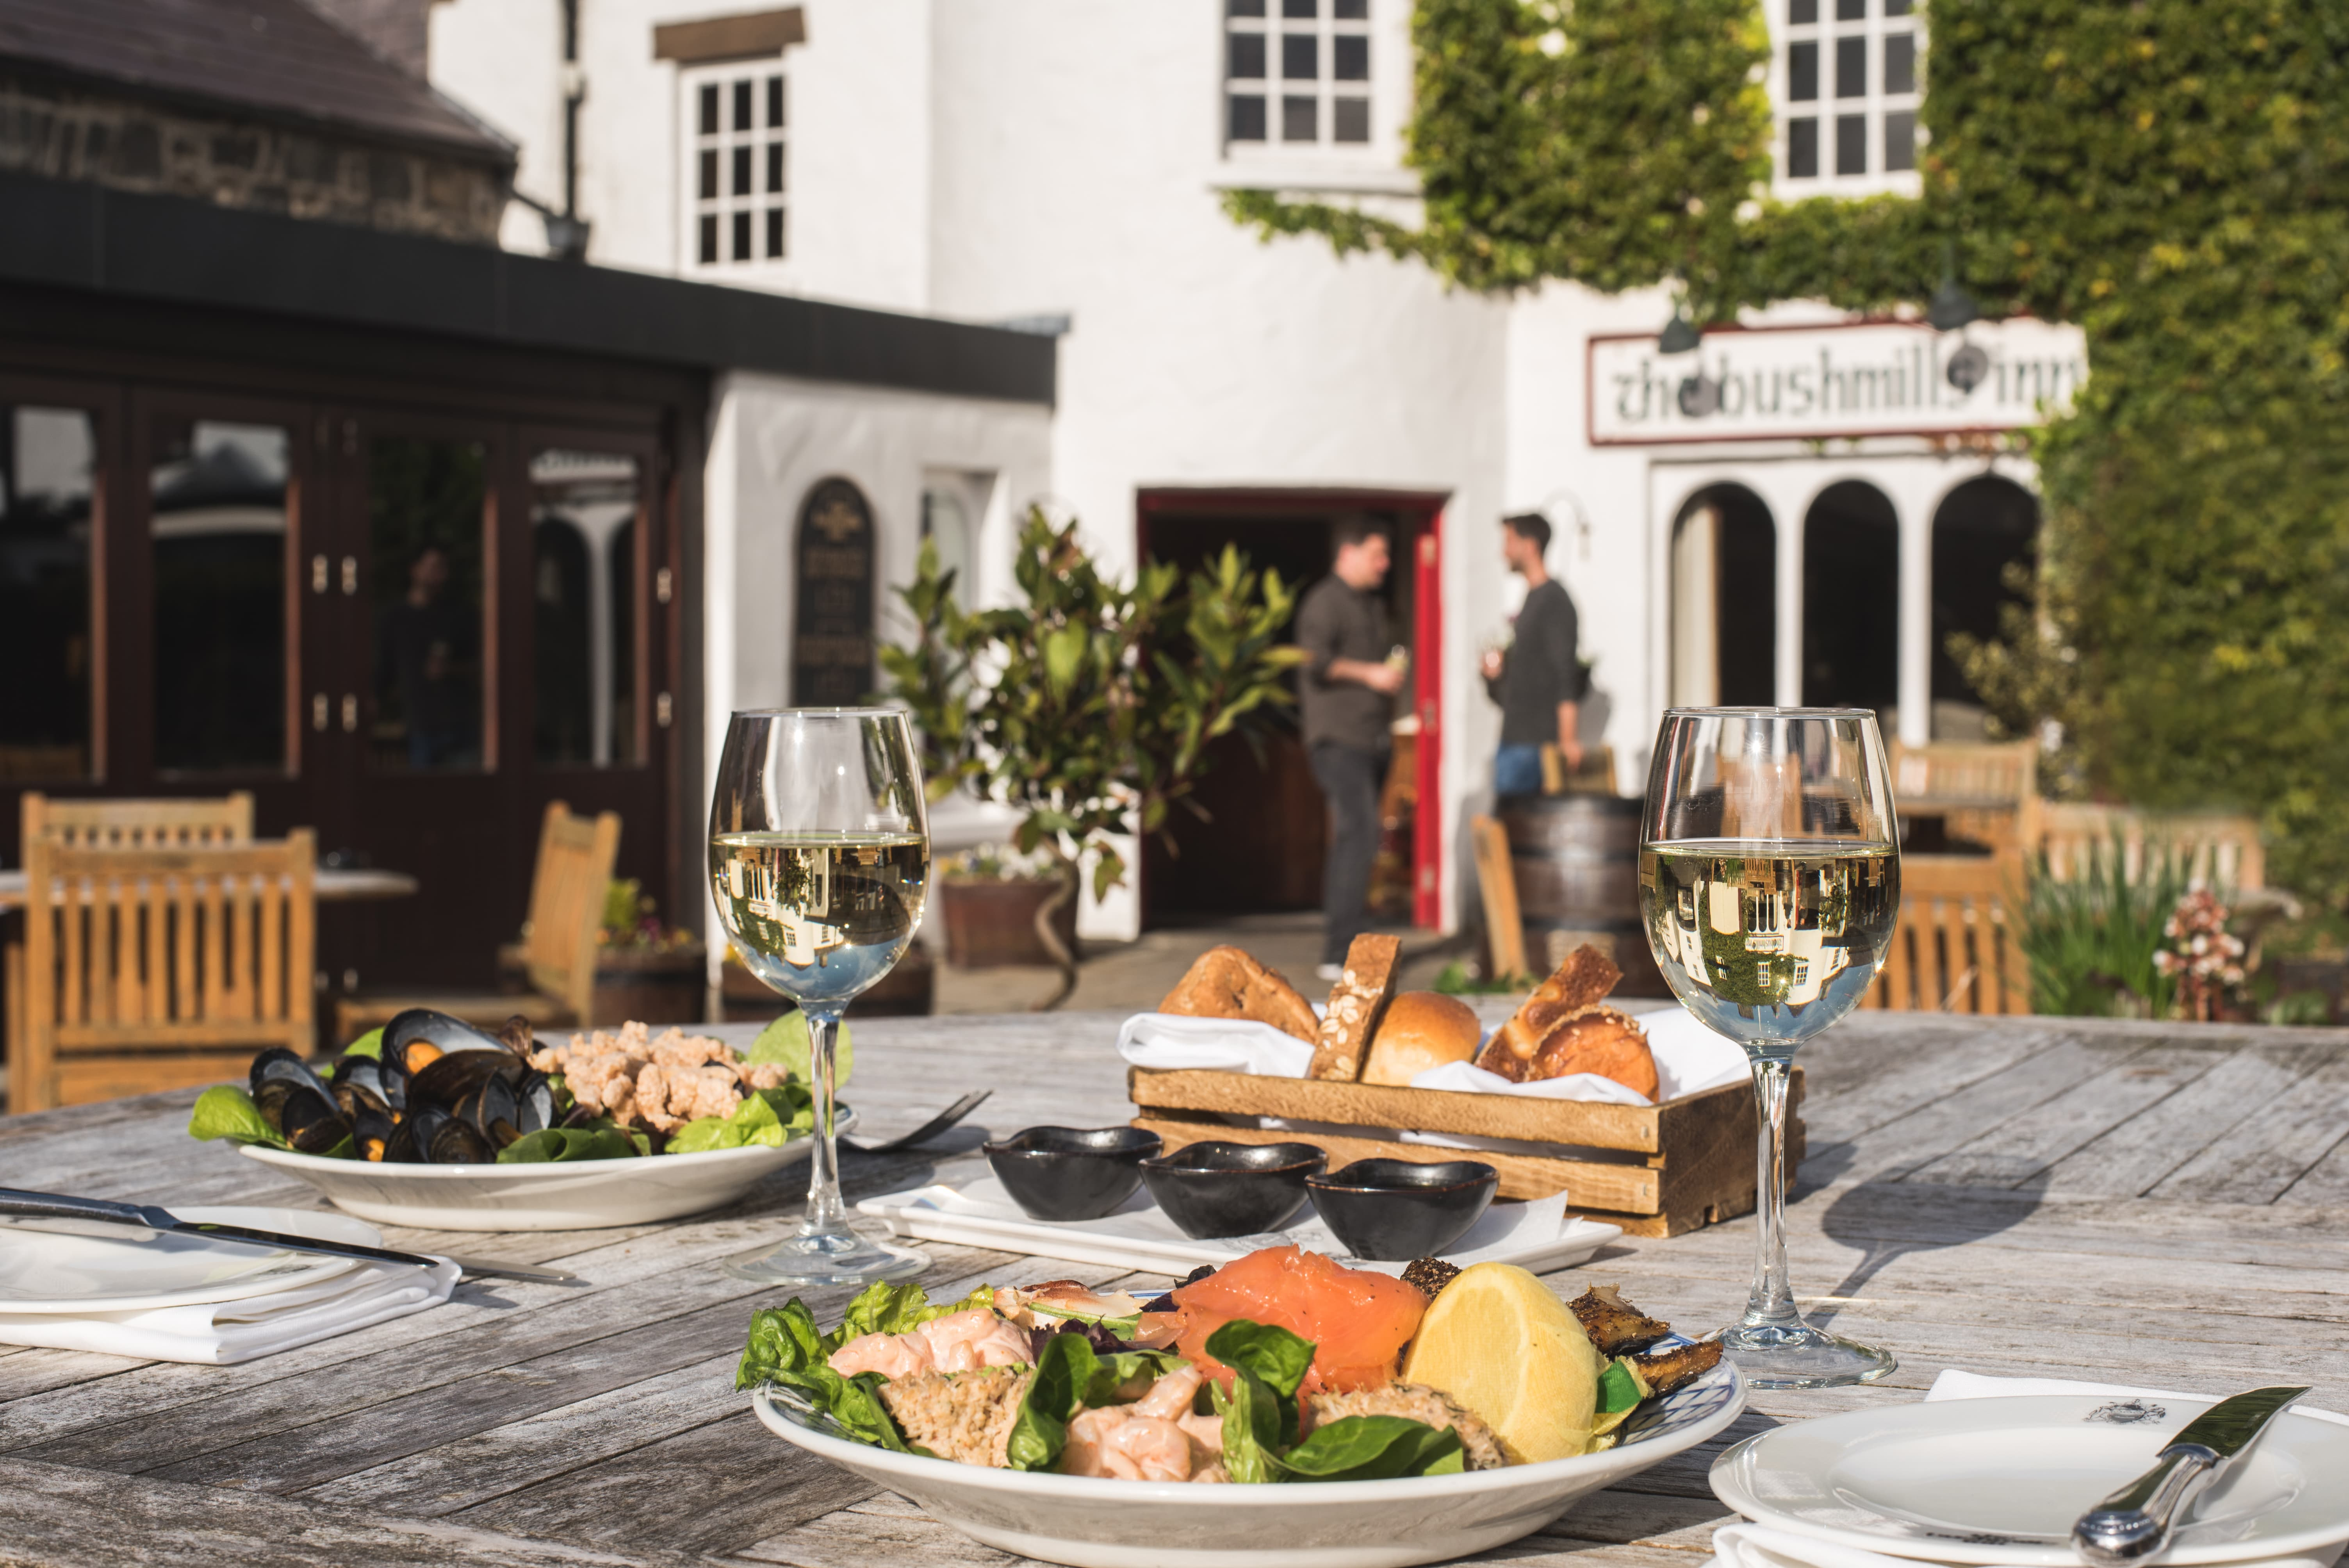 Summer Dining at The Bushmills Inn